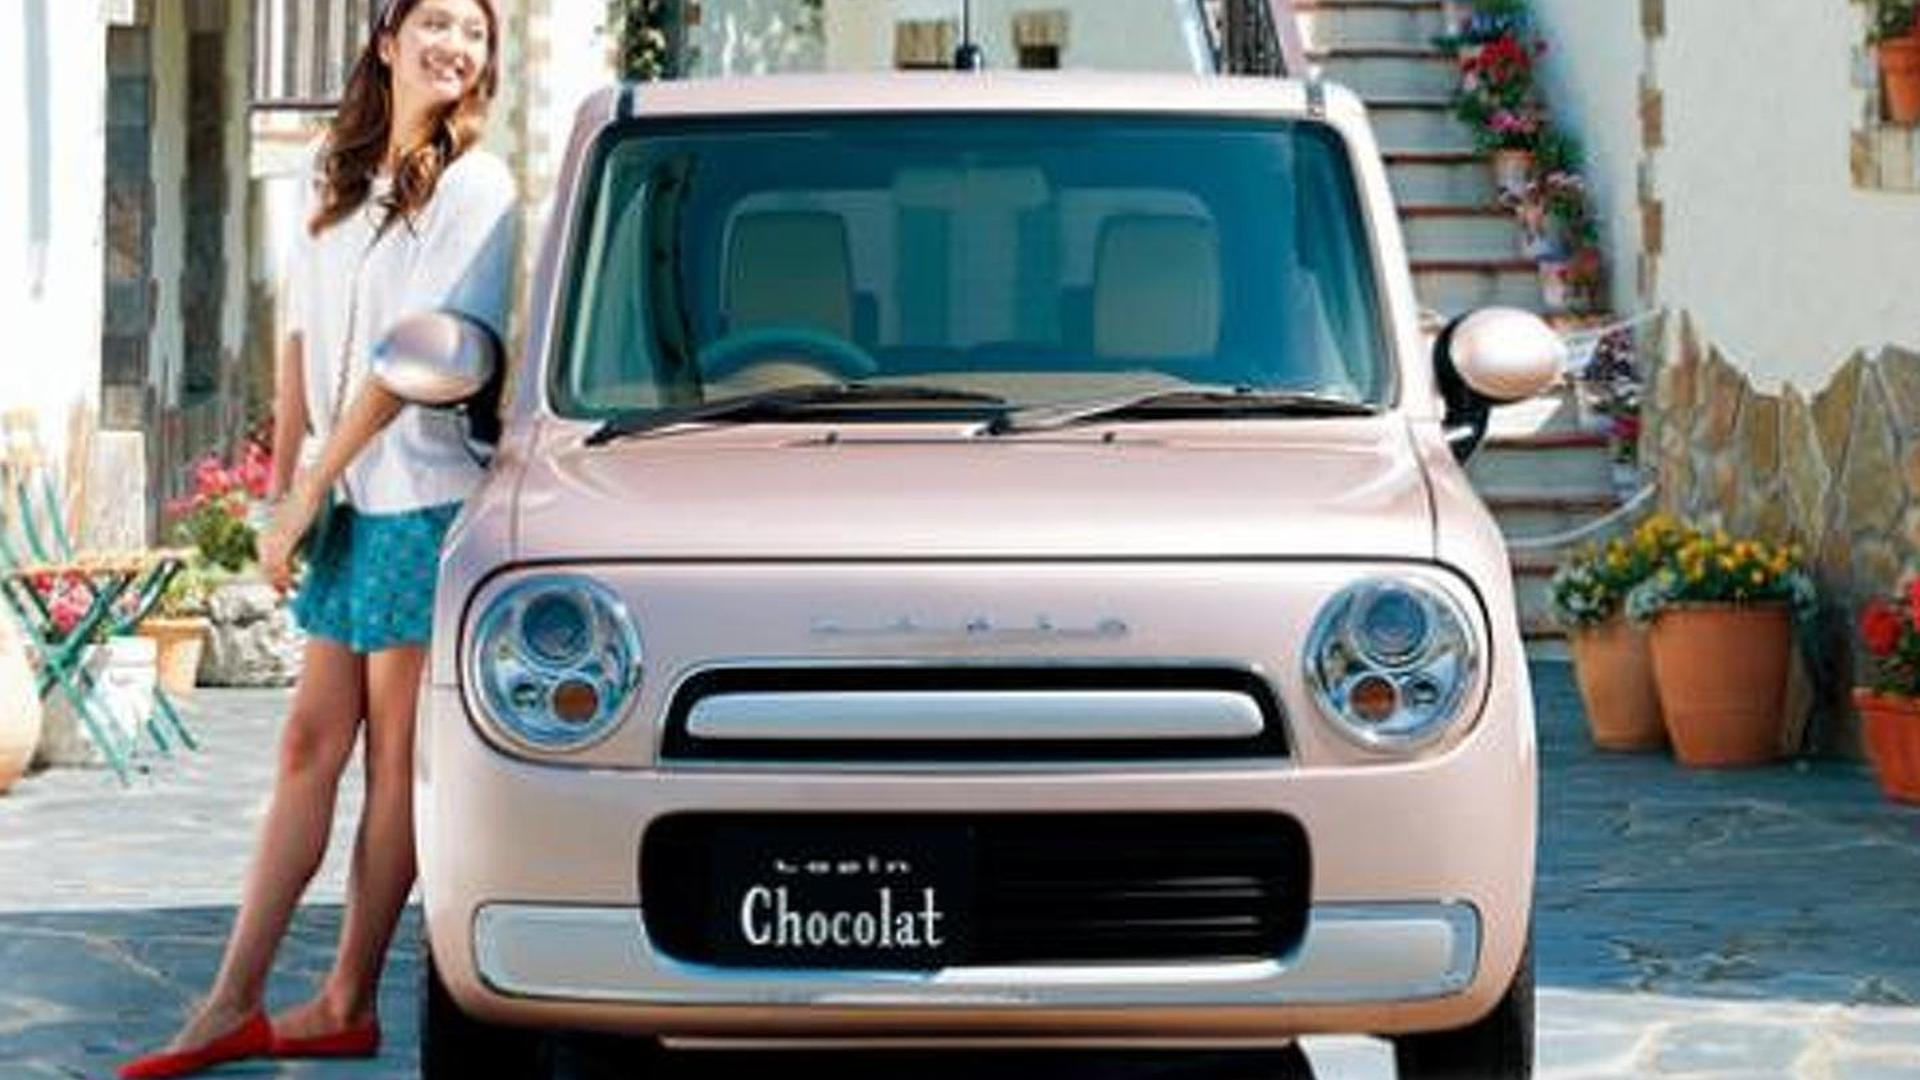 Suzuki embraces the chick car, introduces the female-friendly Lapin Chocolat